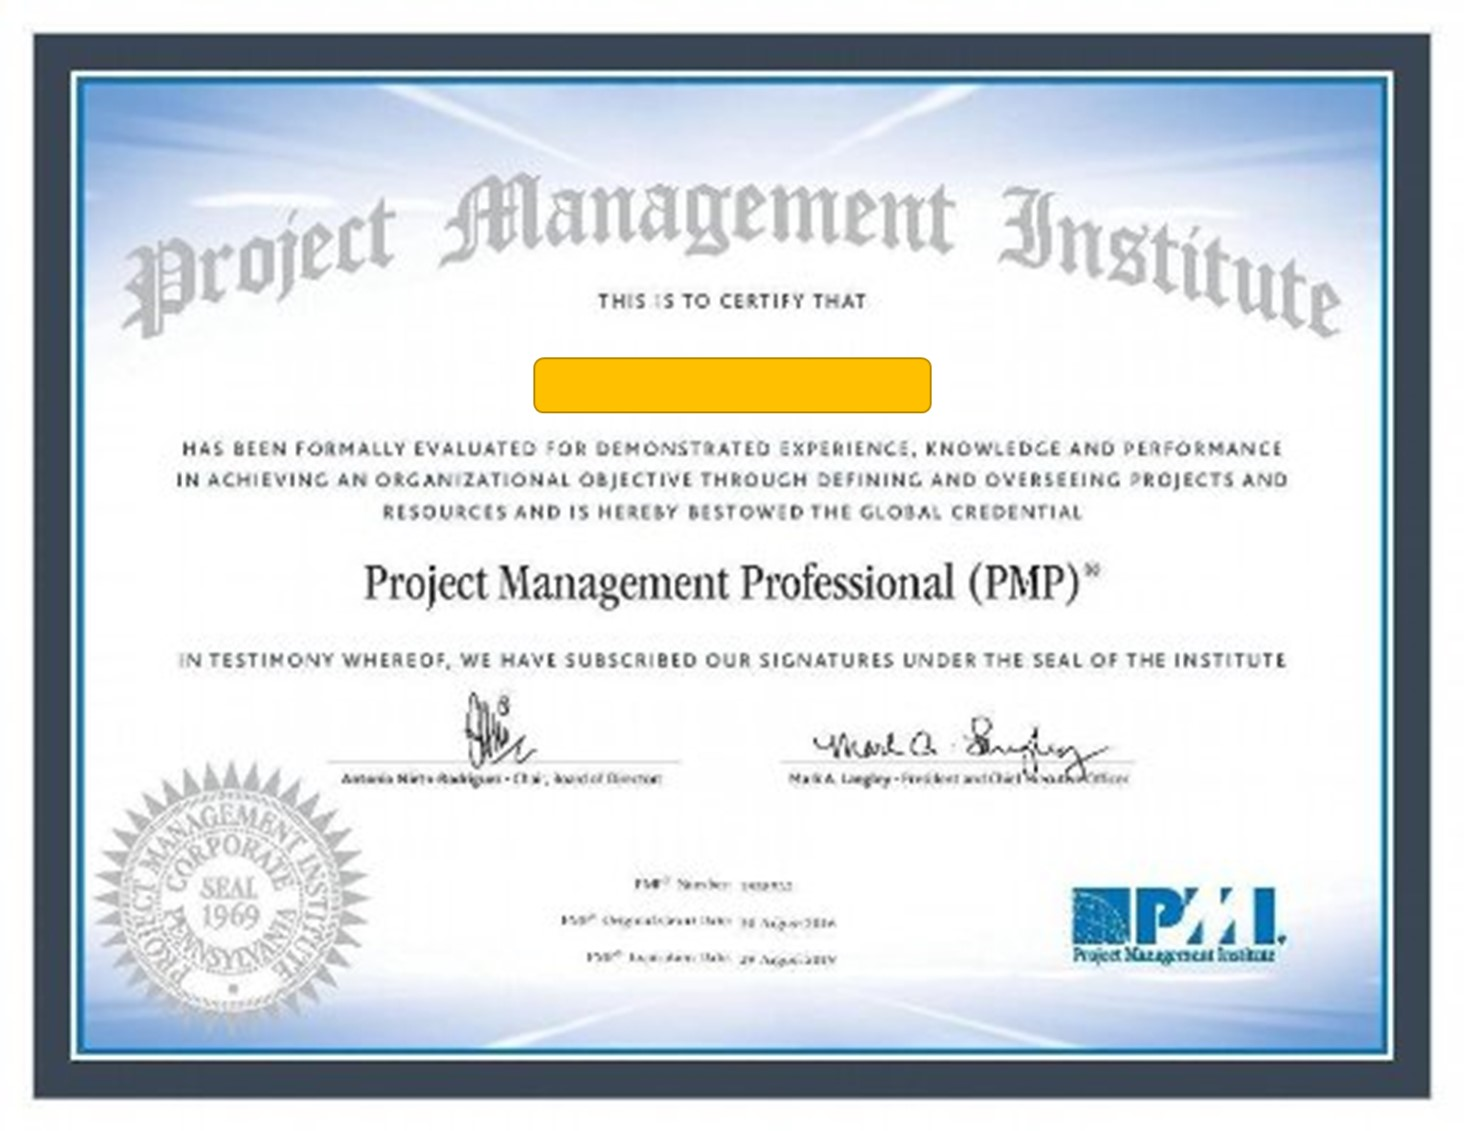 The Pmp Certificate From 2016 Applied Project Management